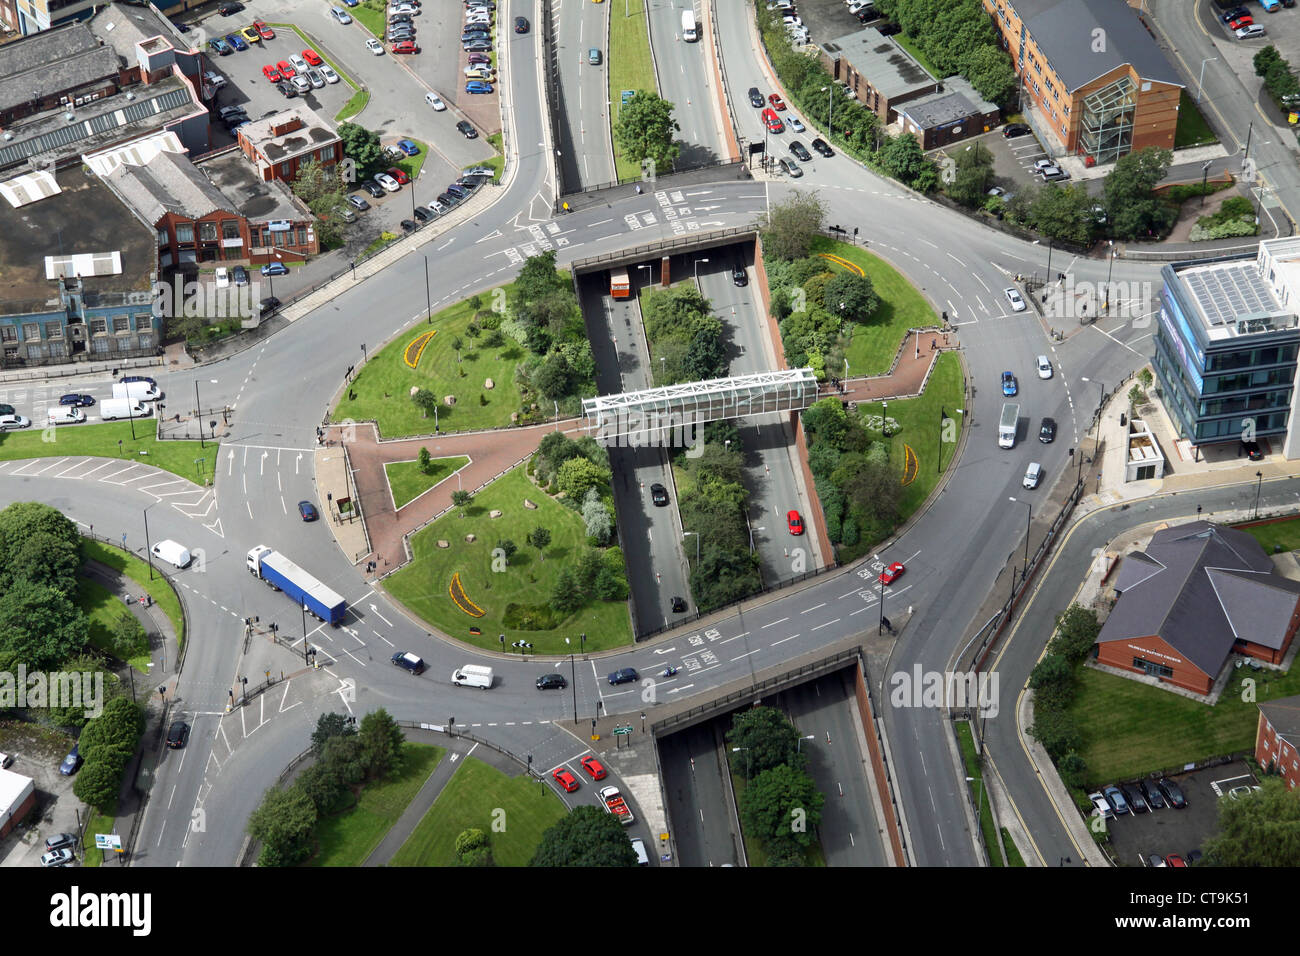 aerial view of a large roundabout over a dual carriageway road with greenery and a footbridge - Stock Image